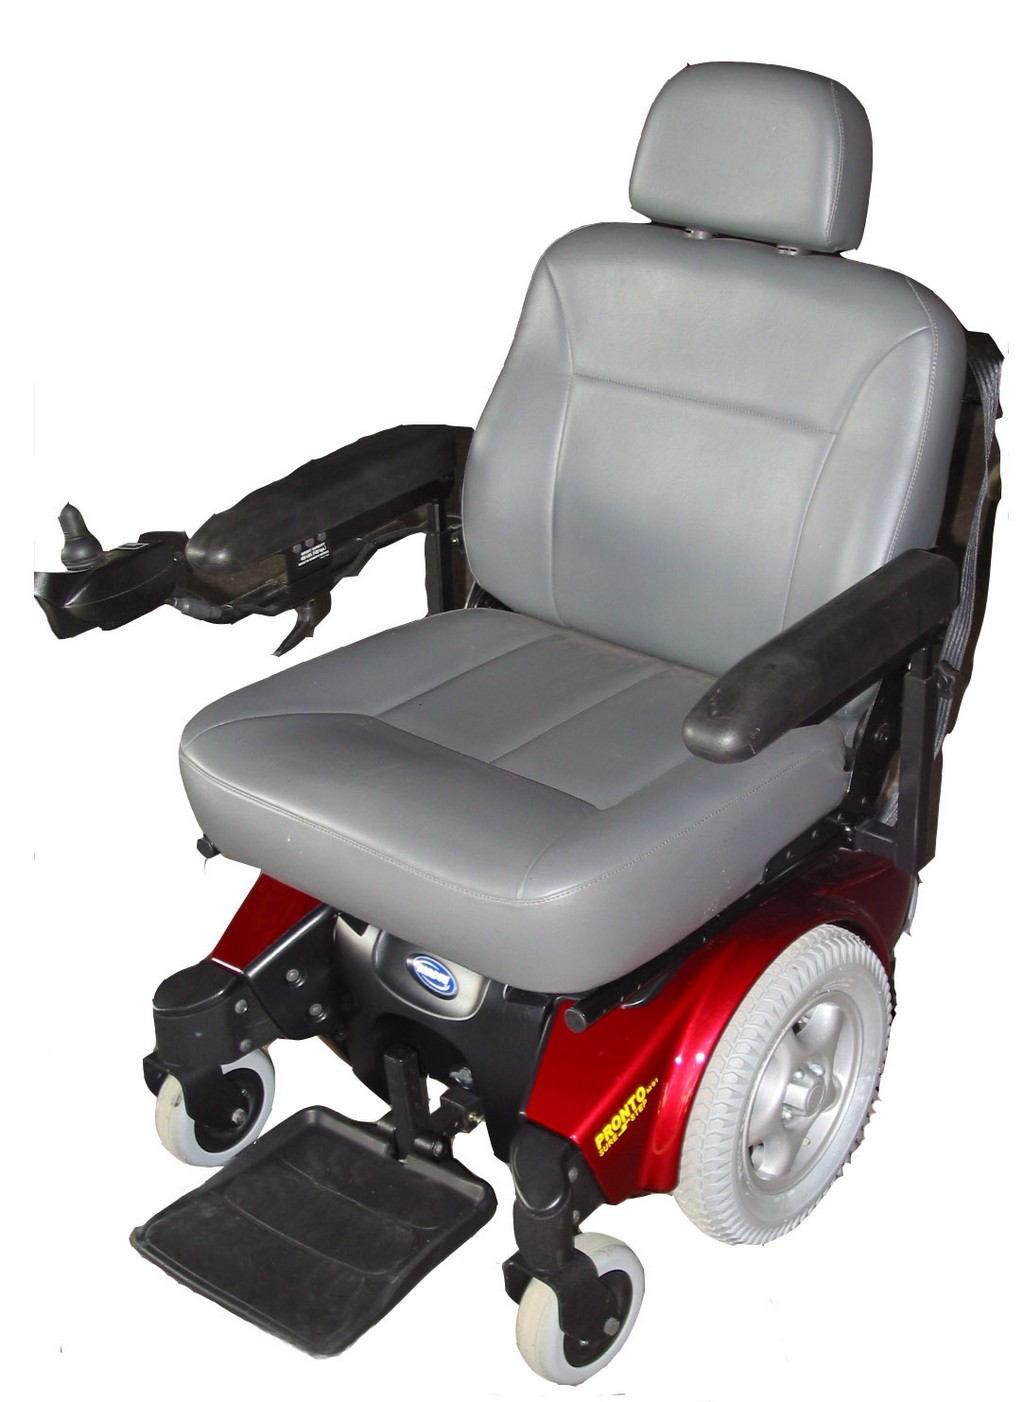 head controlled power wheelchair, dalton heavy duty power wheelchair, permobil chairman entra electric wheelchair, dalton power wheel chairs